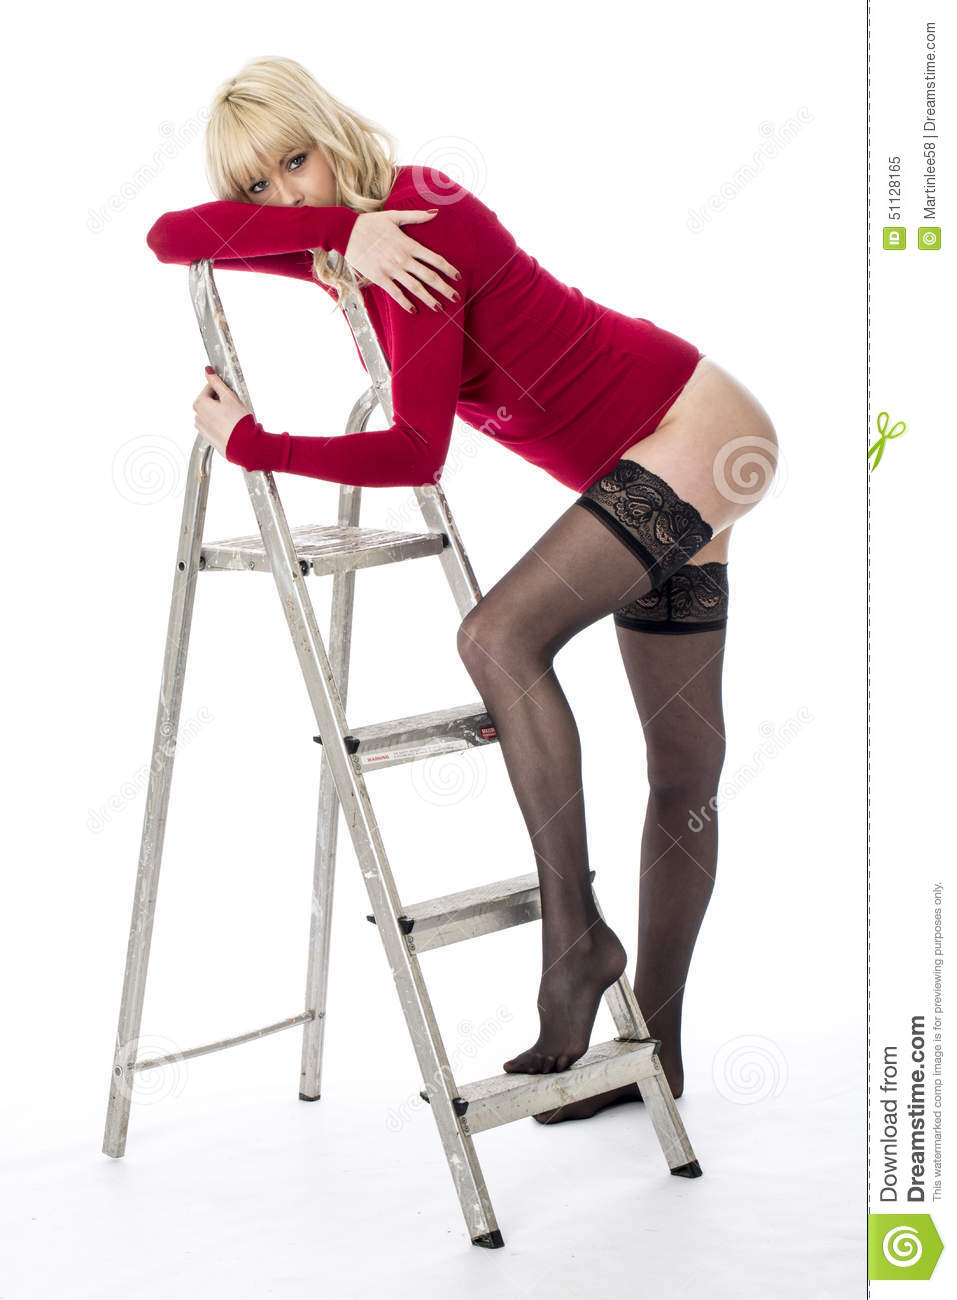 f40193538b1 Young Pin Up Model Climbing Ladder Stock Image - Image of tempting ...